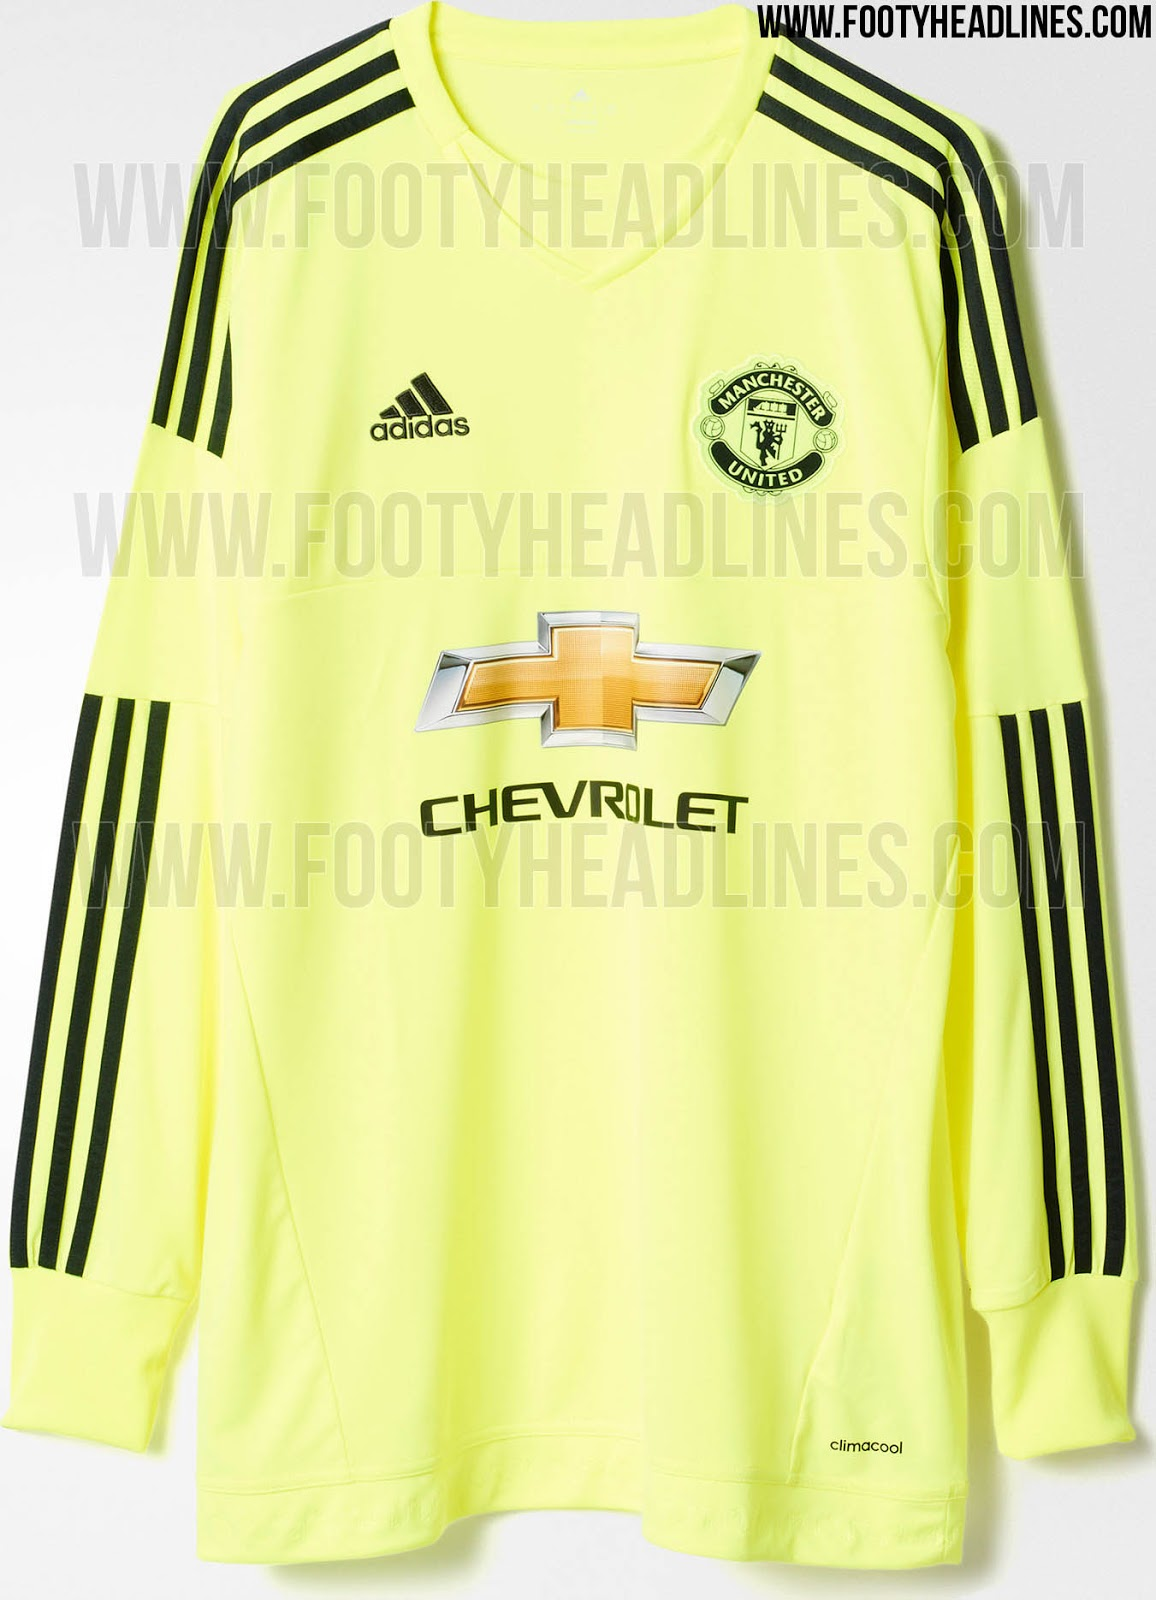 adidas manchester united 15 16 kits released footy headlines. Black Bedroom Furniture Sets. Home Design Ideas